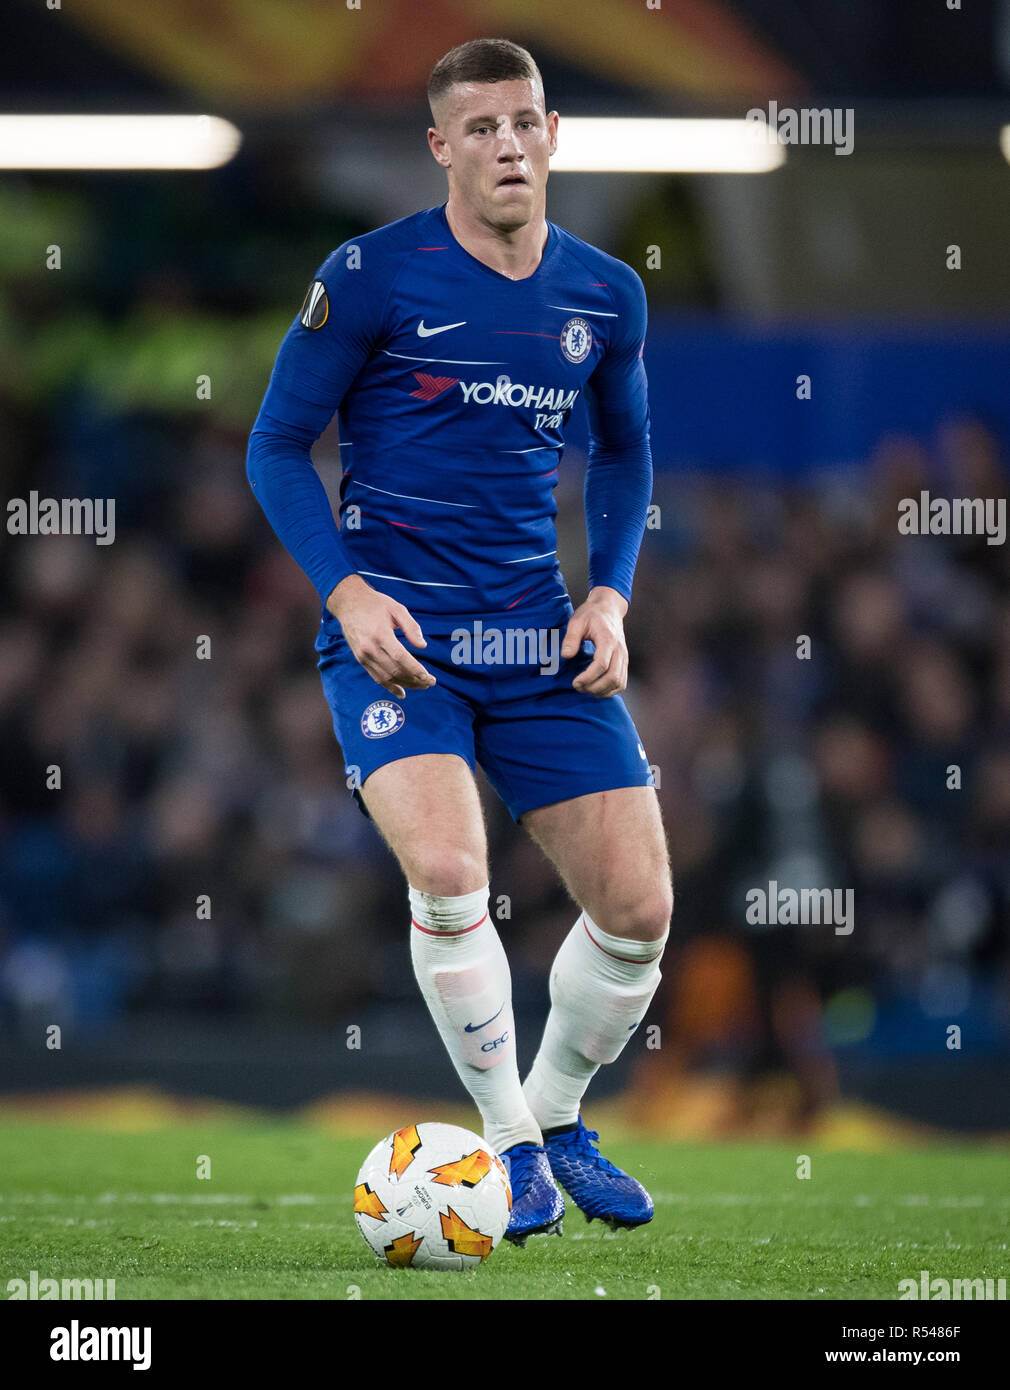 brand new c2a02 3bfde London, UK. 29th Nov, 2018. Ross BARKLEY of Chelsea during ...